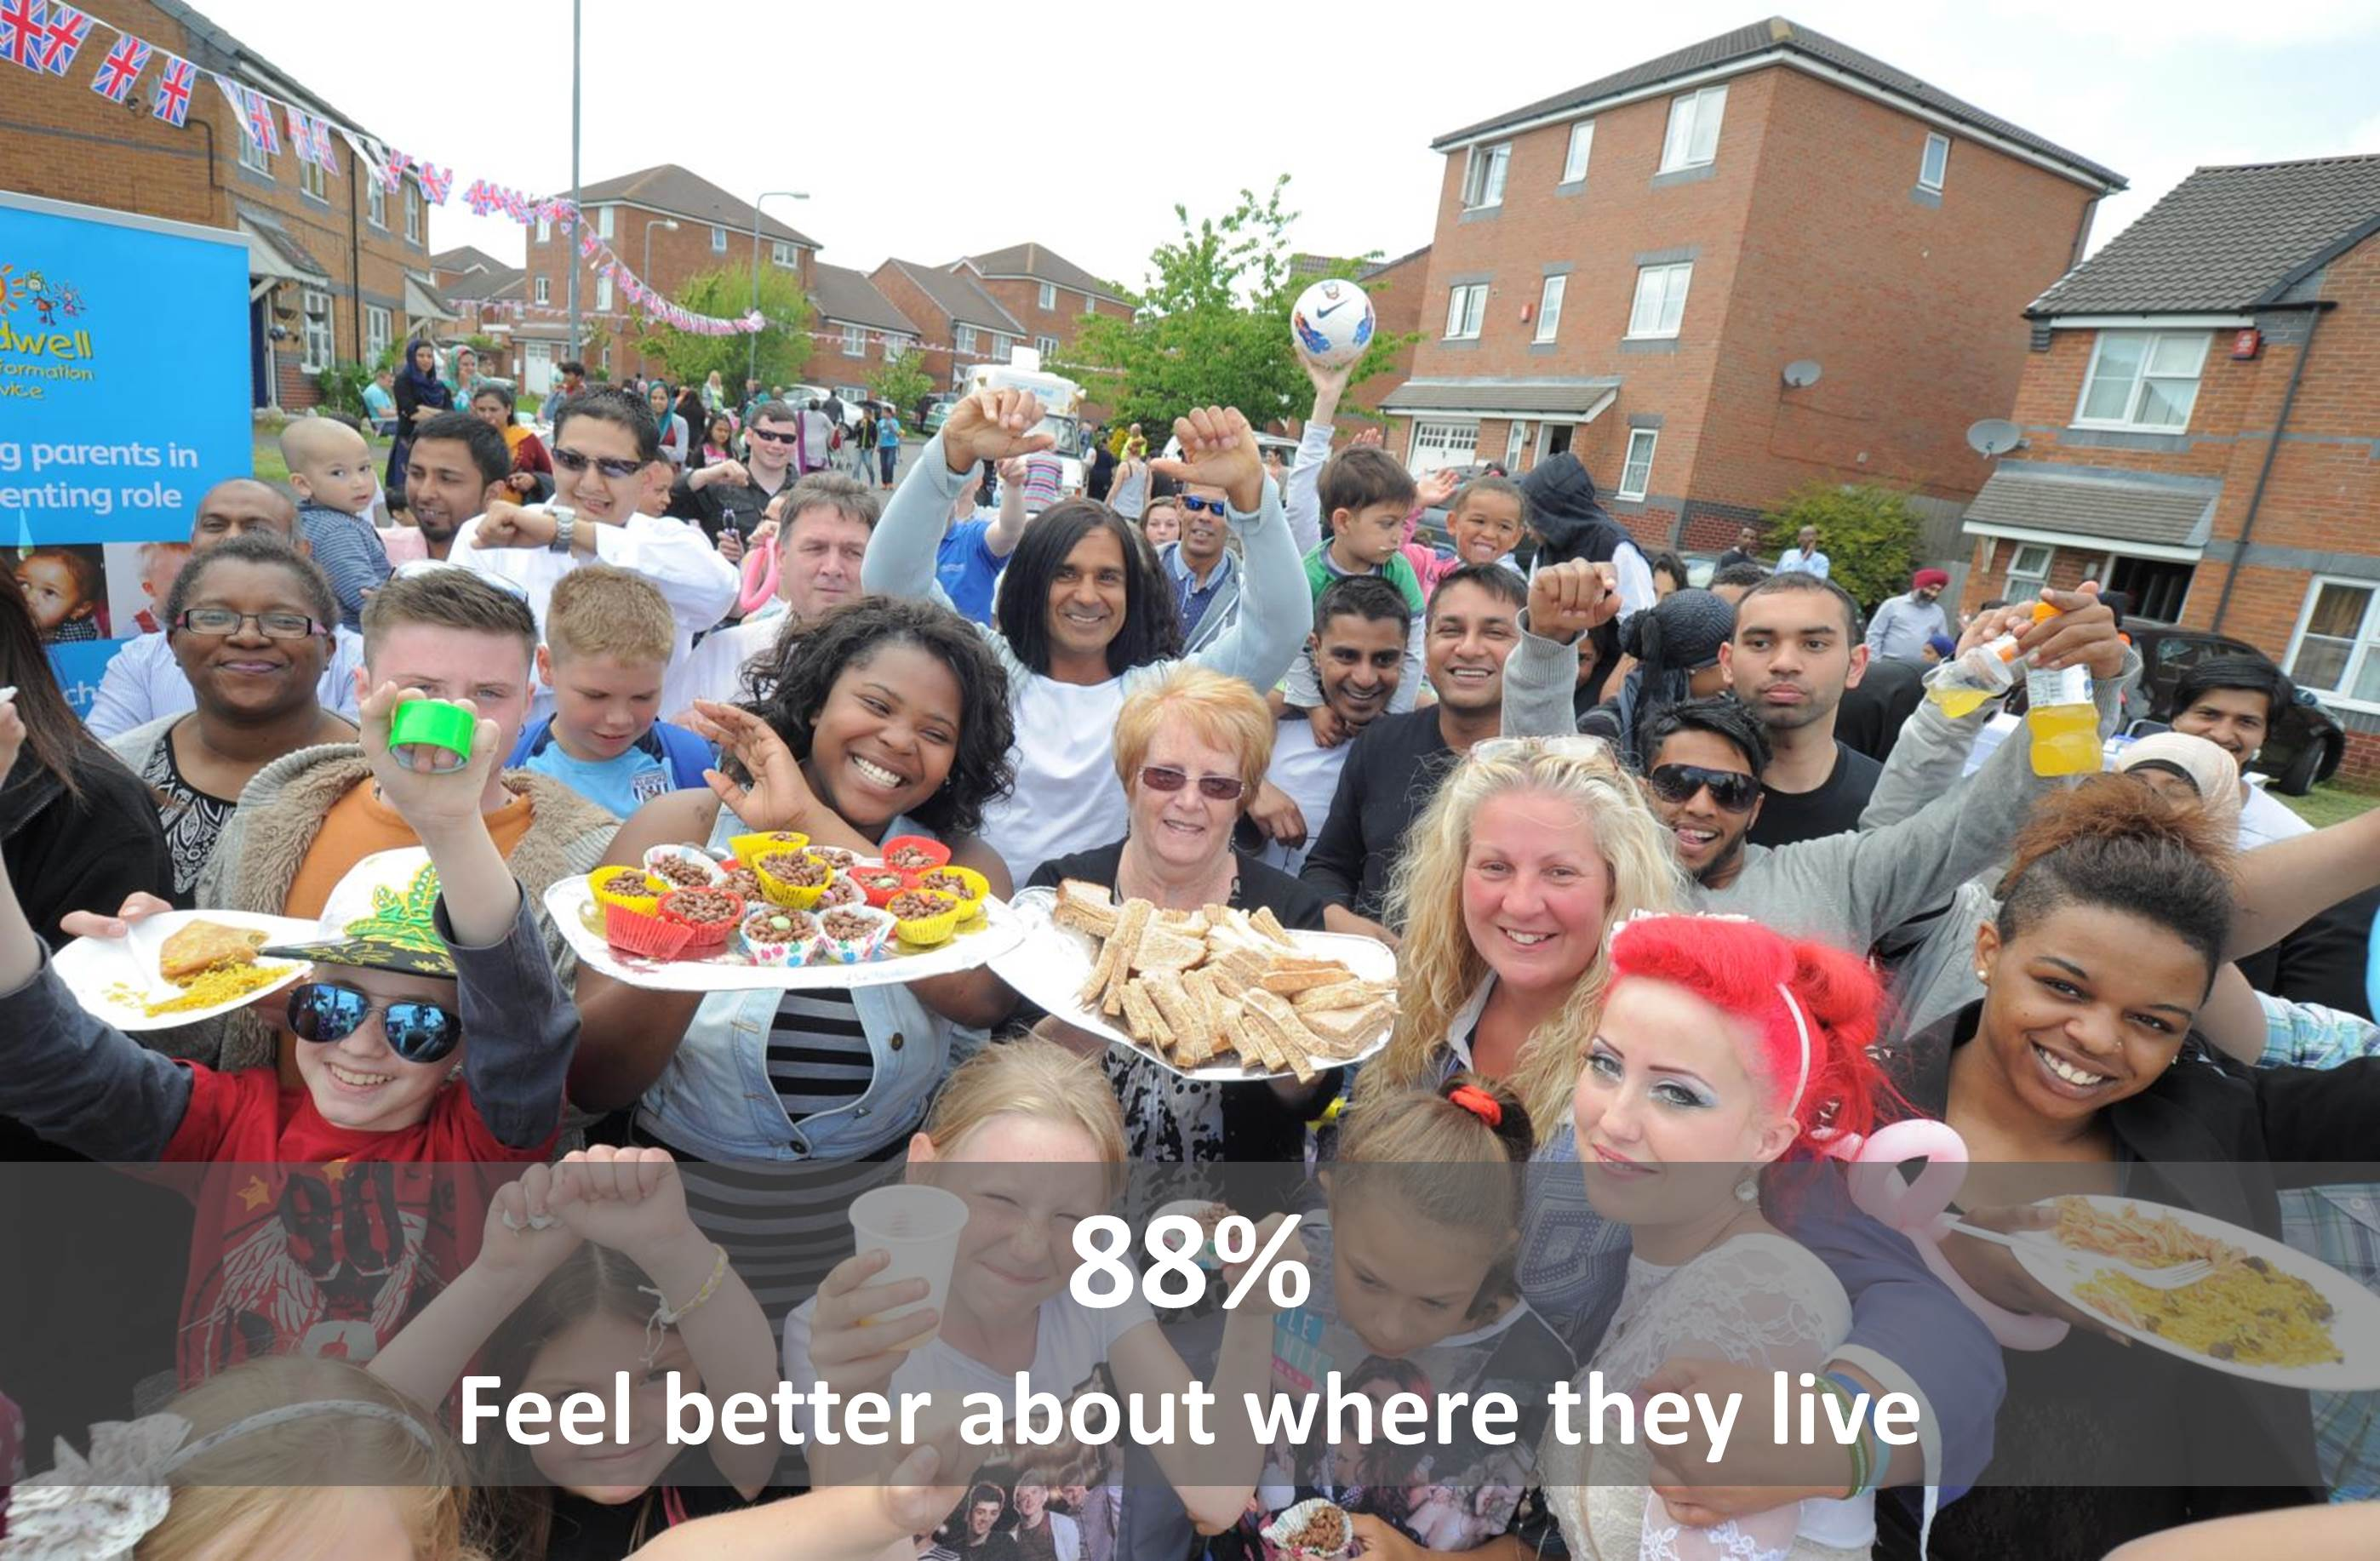 88% of people taking part feel better about where they live